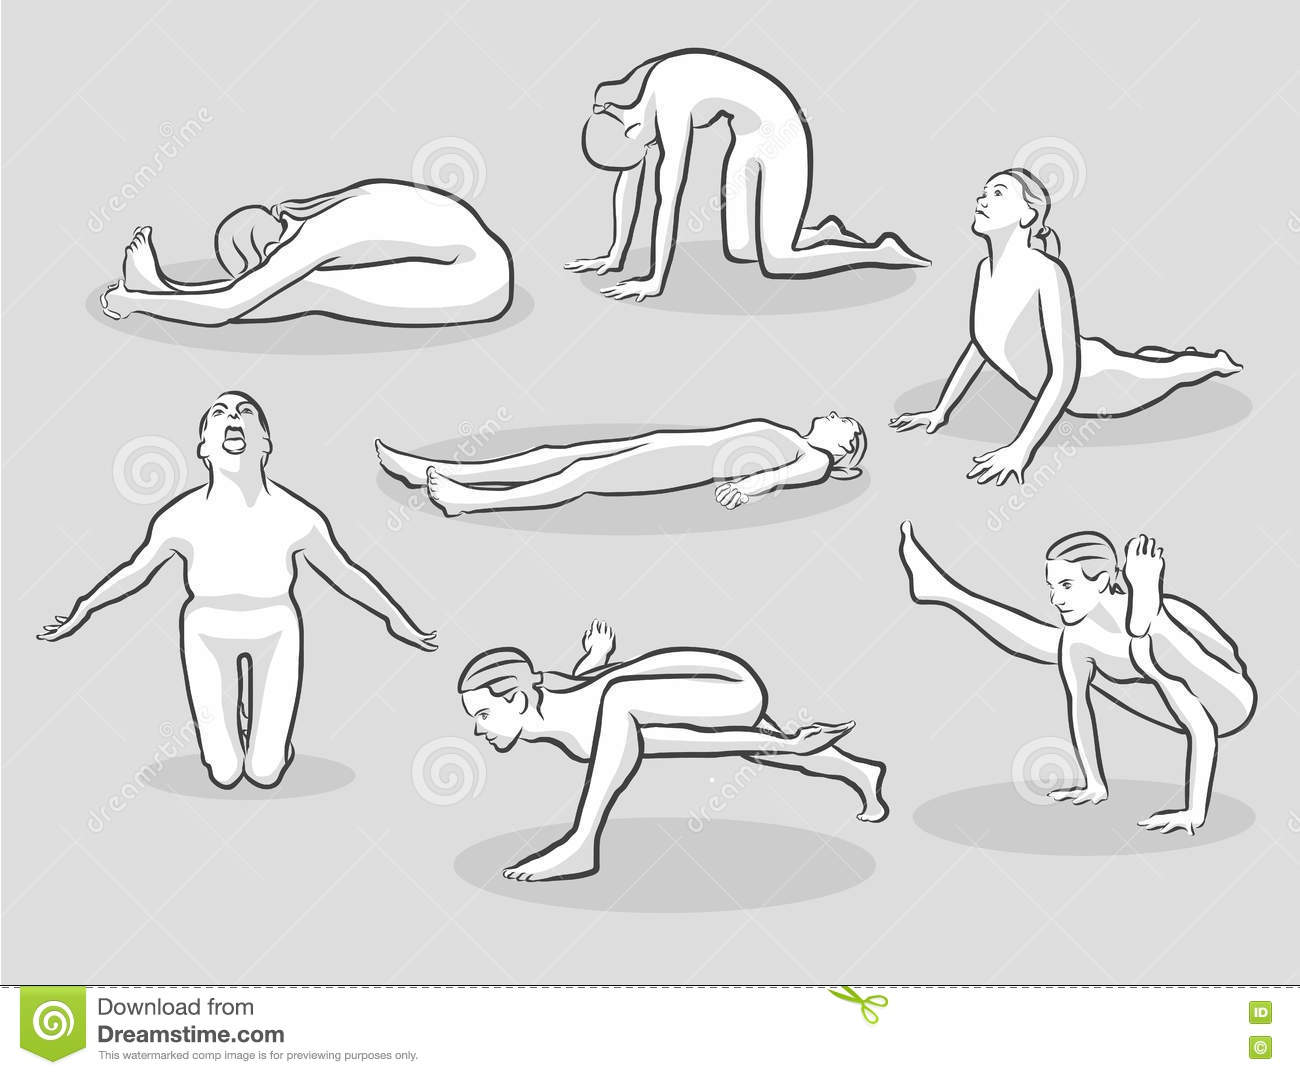 Seven Various Easy And Intermediate Yoga Poses Stock Vector